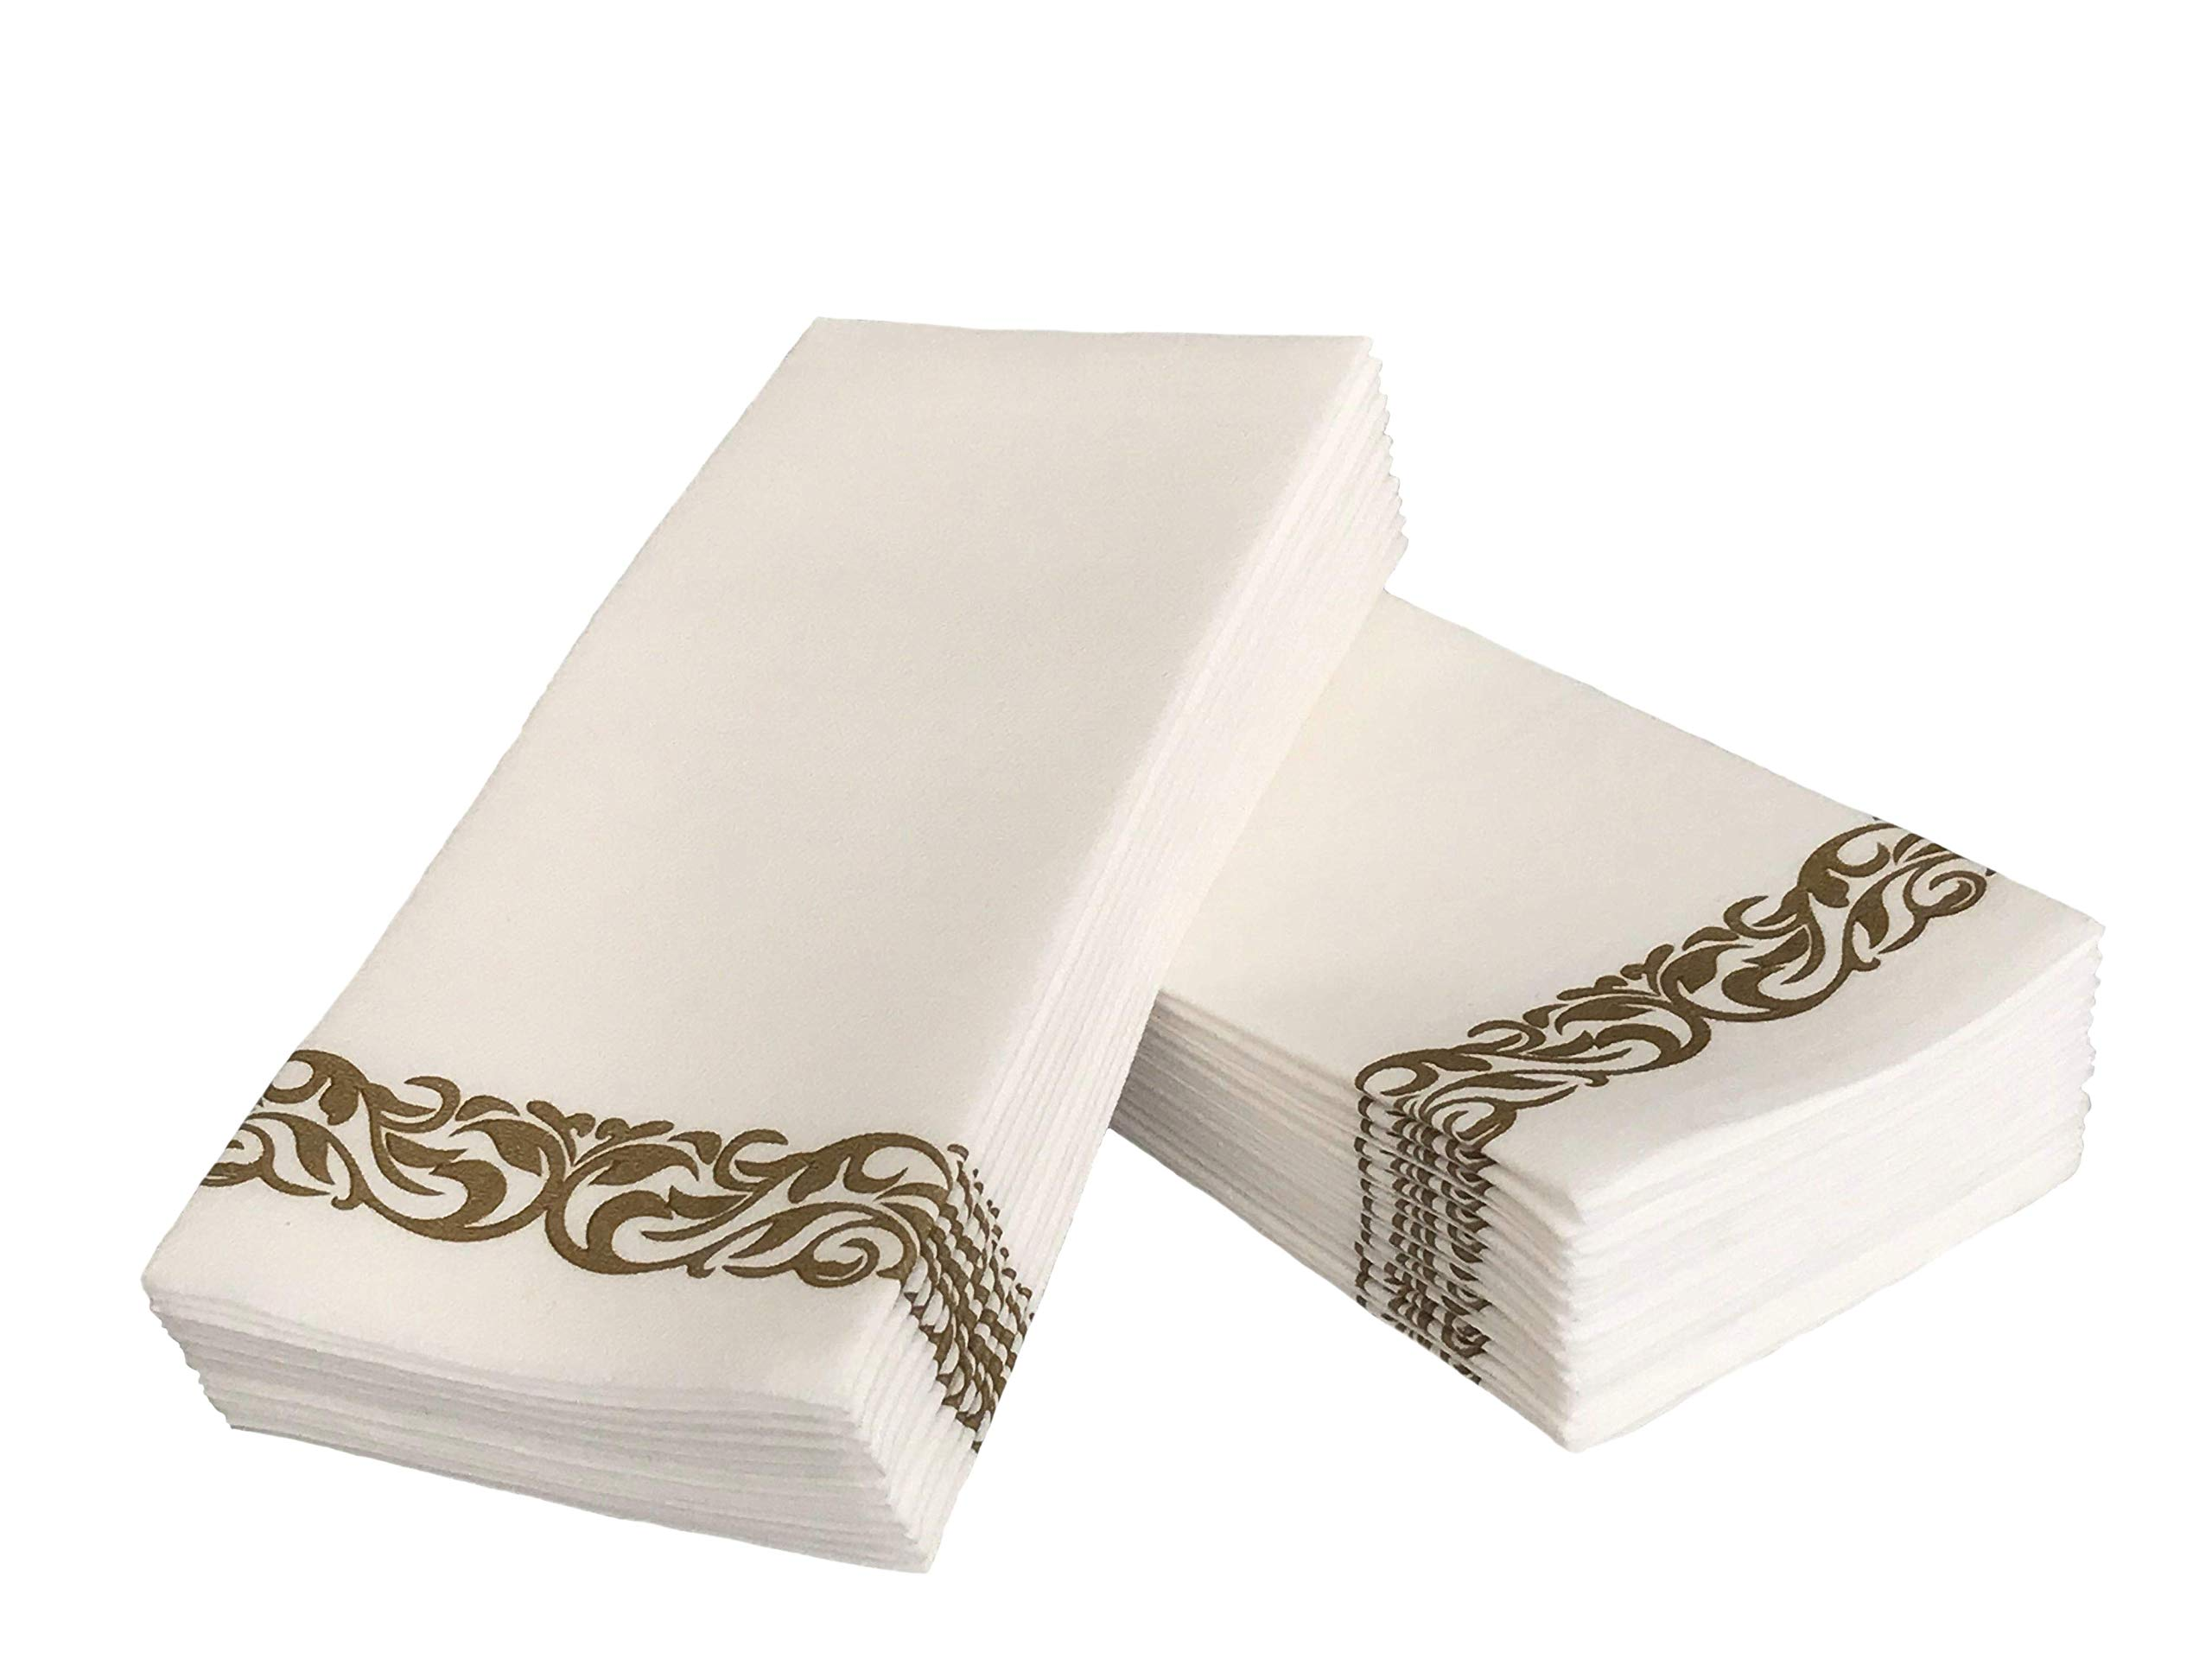 Haven Needs Disposable Decorative Table Napkins and Bathroom Hand Towels - Strong Yet Soft and Absorbent Cloth-Like Premium Paper Guest Towels - Elegant and Luxurious - for Parties Weddings Events